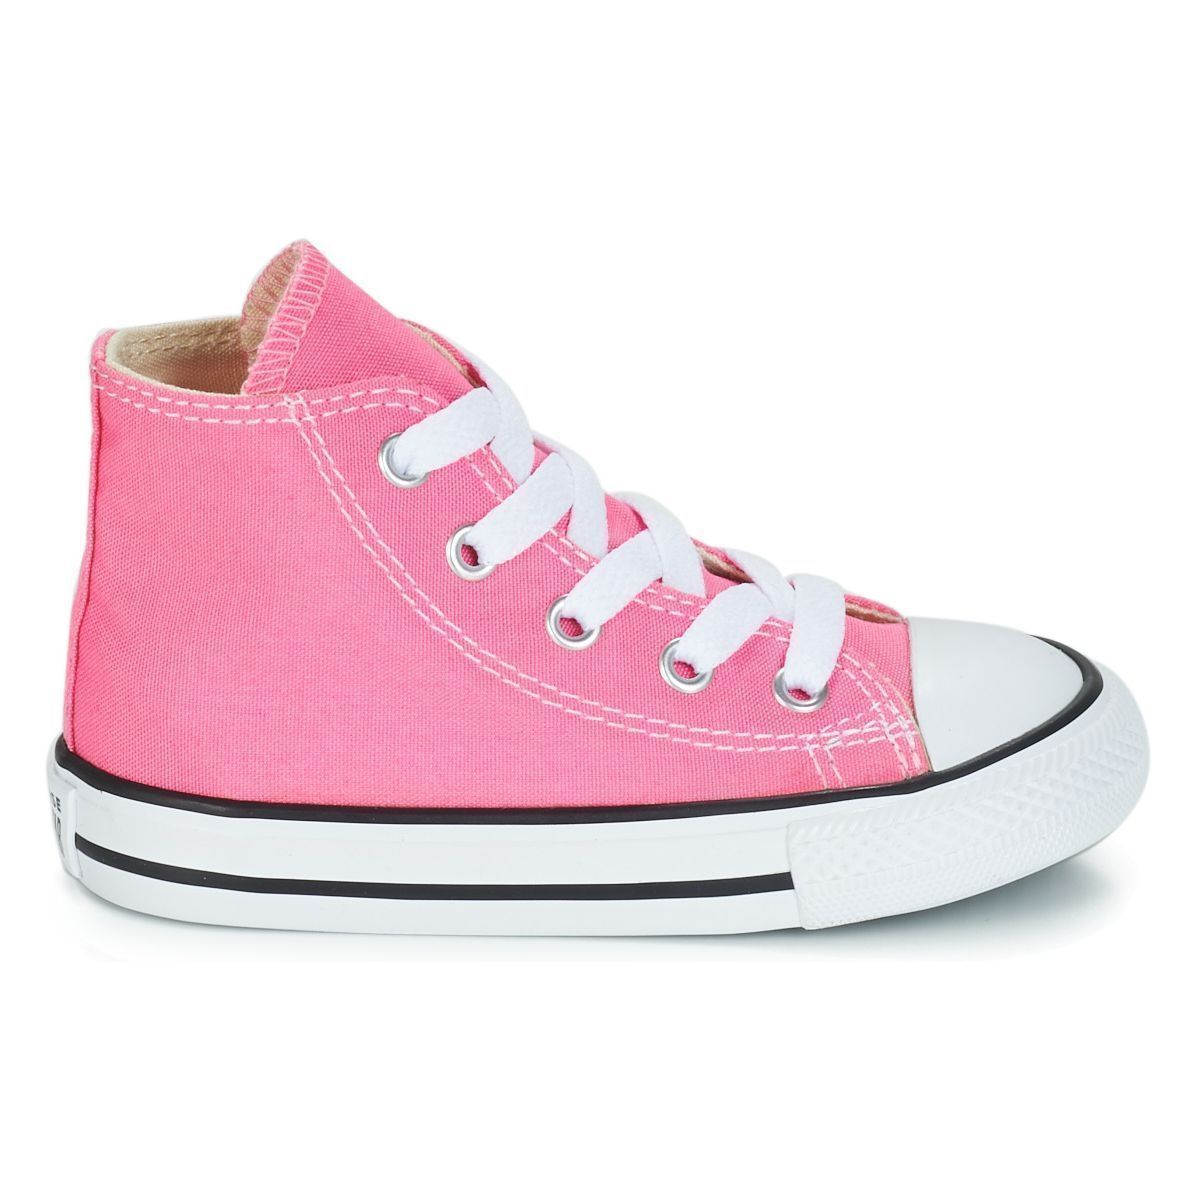 BOLS_FLOWER VALKYRIA SAFI MINI CTAS HI ALL STAR:ROSE/TOILE/TOILE/CAOUTCHOUC/Rose